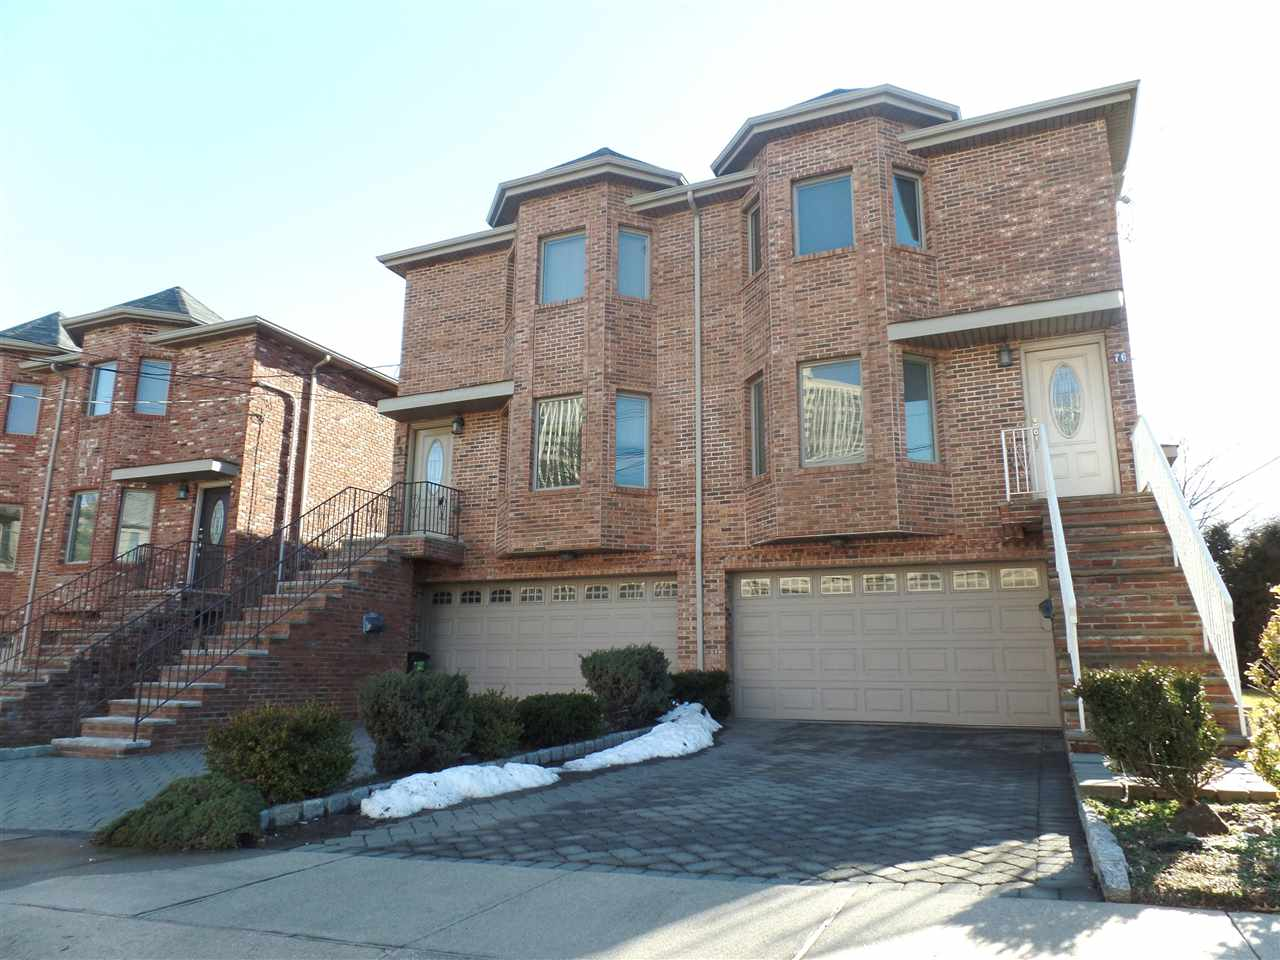 76 KNOX AVE 76, Cliffside Park, NJ 07010